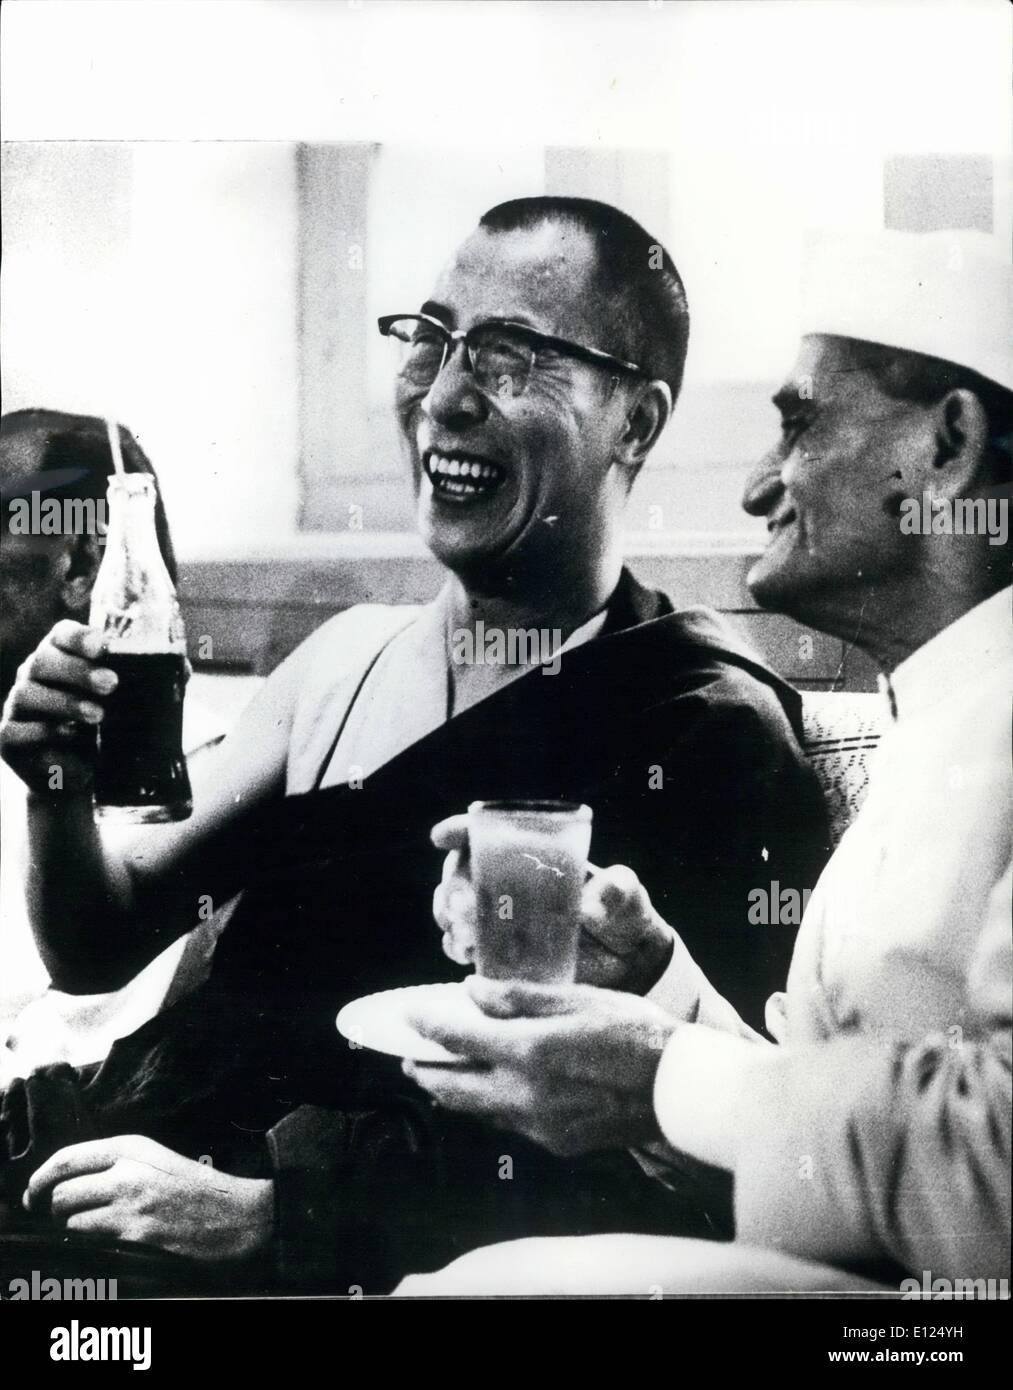 Aug. 08, 1986 - The Dalai Lama of Tibet at reception in New Delhi. Photo shows the Dalai Lama of Tibet, pictured with the Governor of Kittar Pradesh, Mr. B.N. Dass at a reception in New Delhi recently. - Stock Image